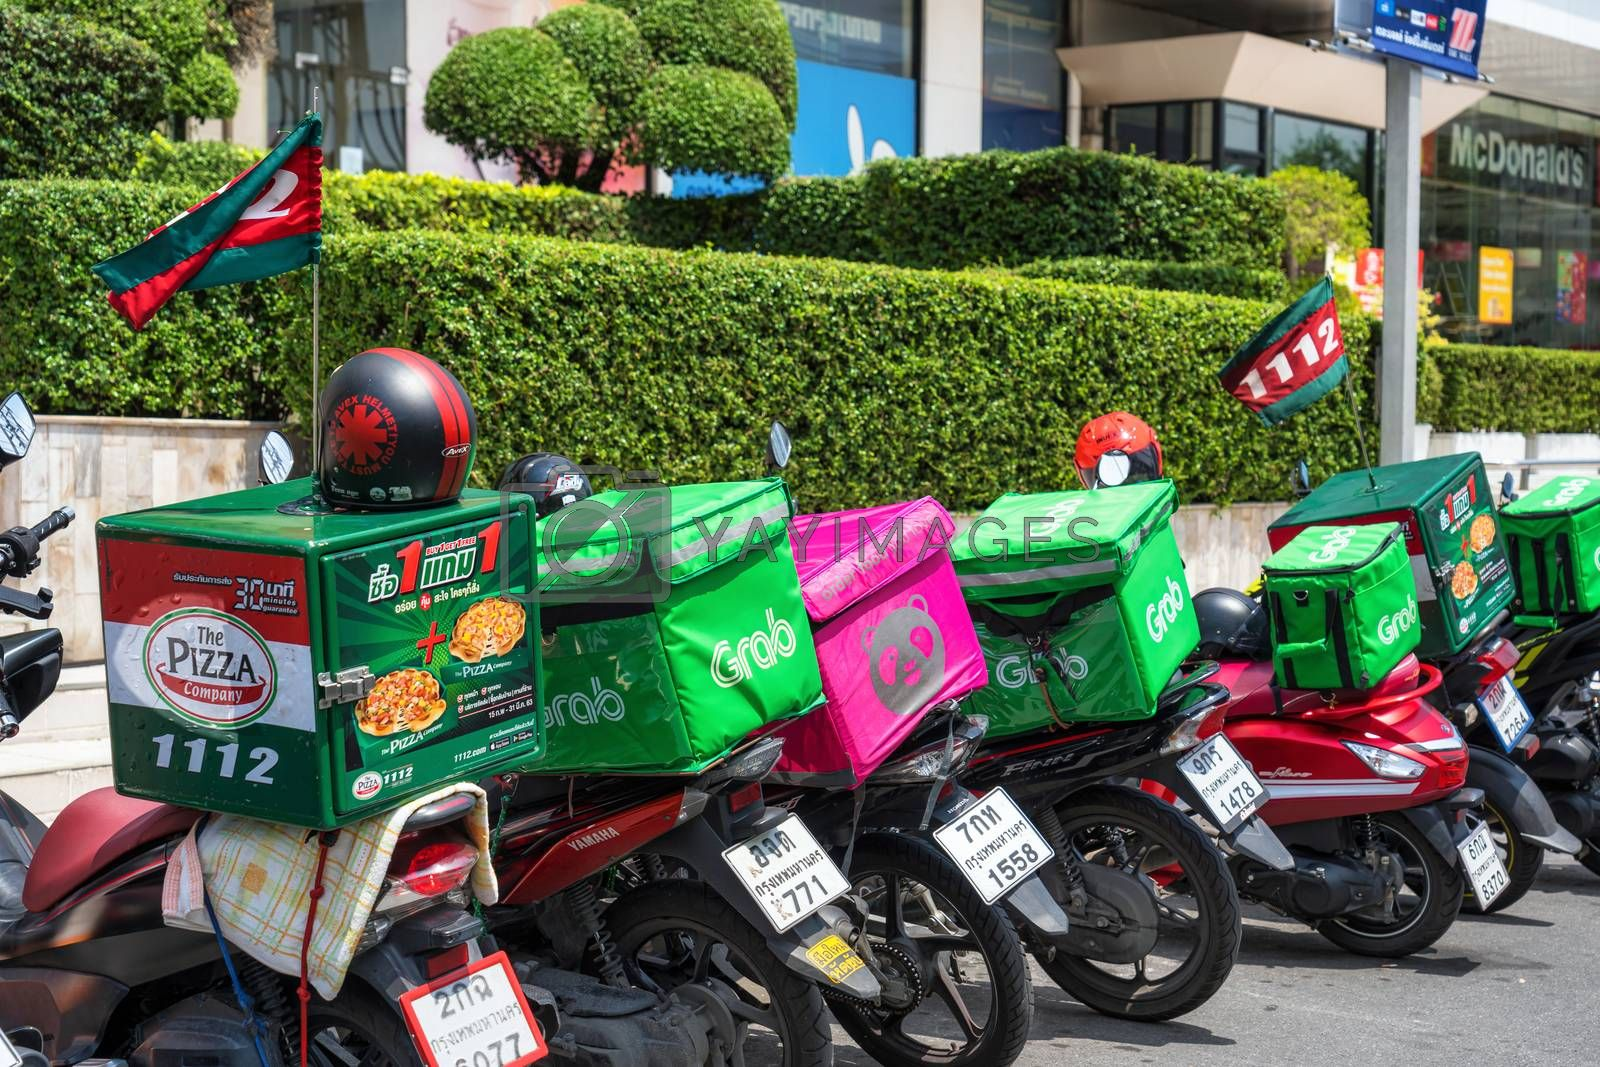 BANGKOK, THAILAND - APRIL 2020 : Various food delivery box on the motorcycles include Grab Food, Food Panda and Pizza at Food delivery service point on April 17, 2020, Bangkok,Thailand, Covid outbreak